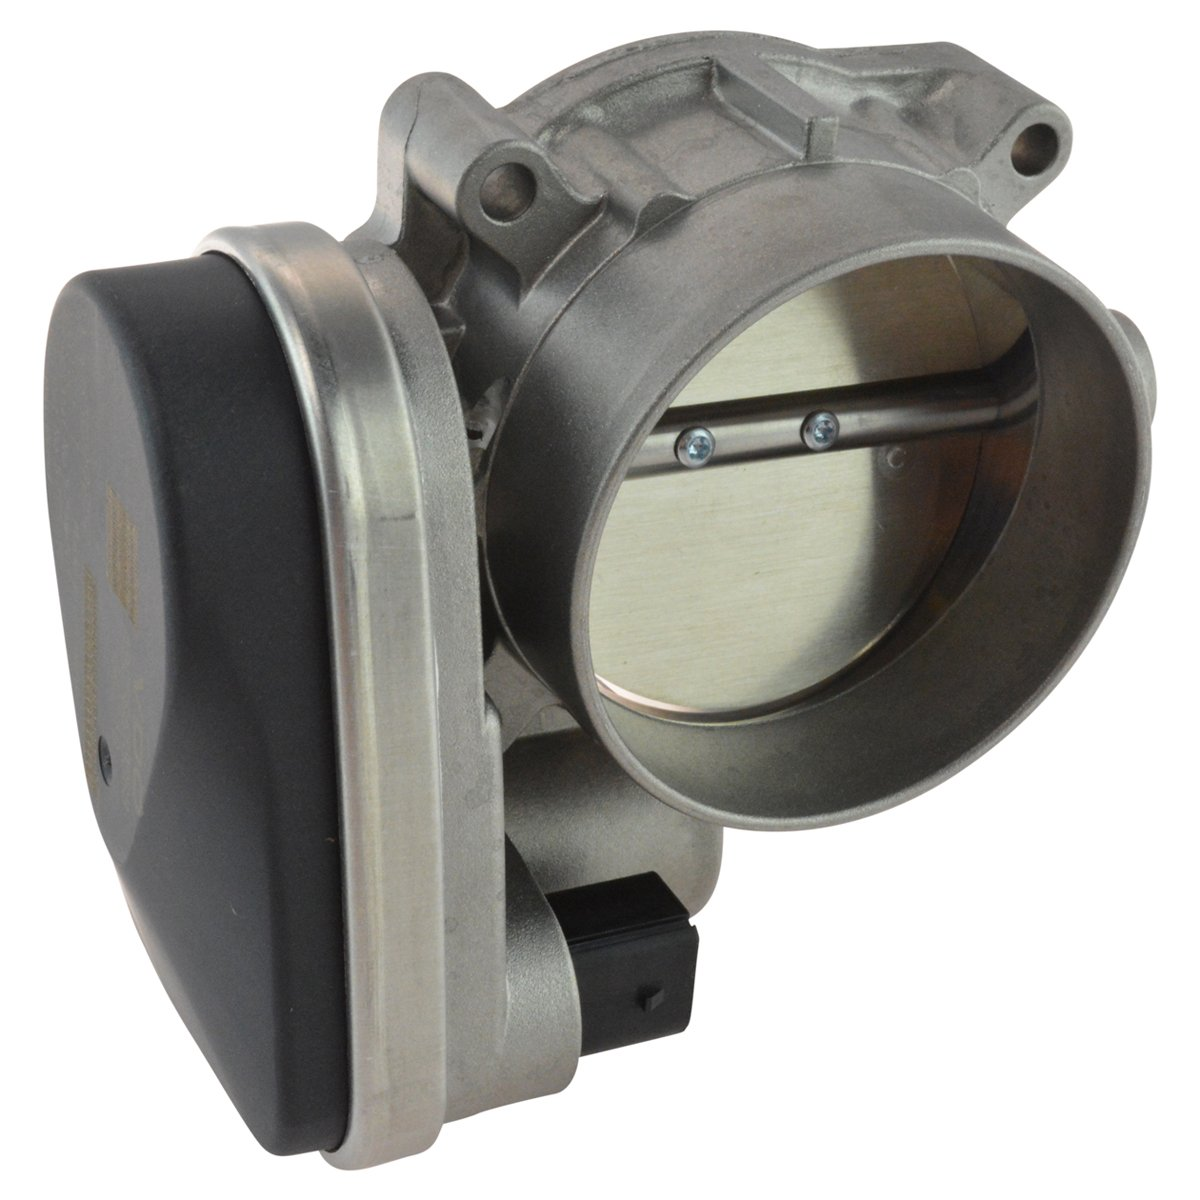 Electronic Throttle Body Assembly for Chrysler Dodge Jeep 5.7L 6.1L 6.4L V8 Models (PLEASE DOUBLE CHECK FITMENT IN DESCRIPTION)